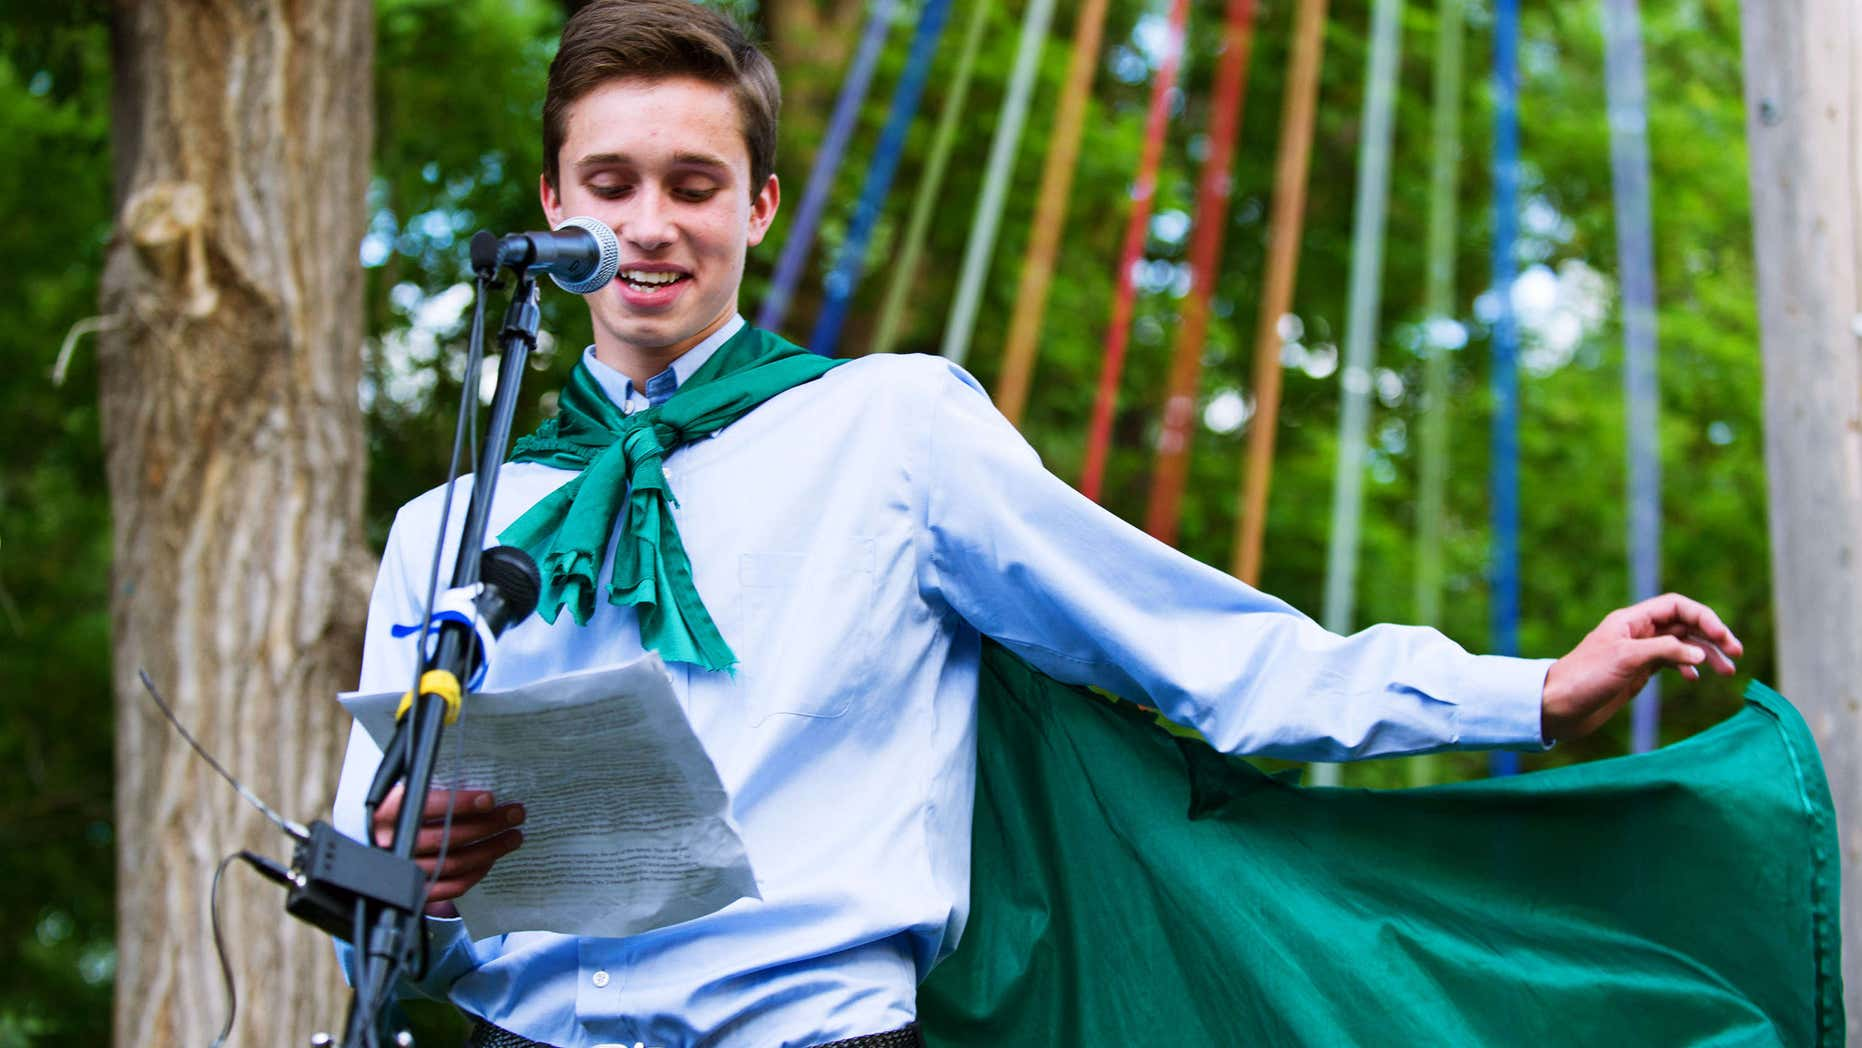 May 31, 2015: Twin Peak Charter School senior Evan Young reads his valedictorian speech.